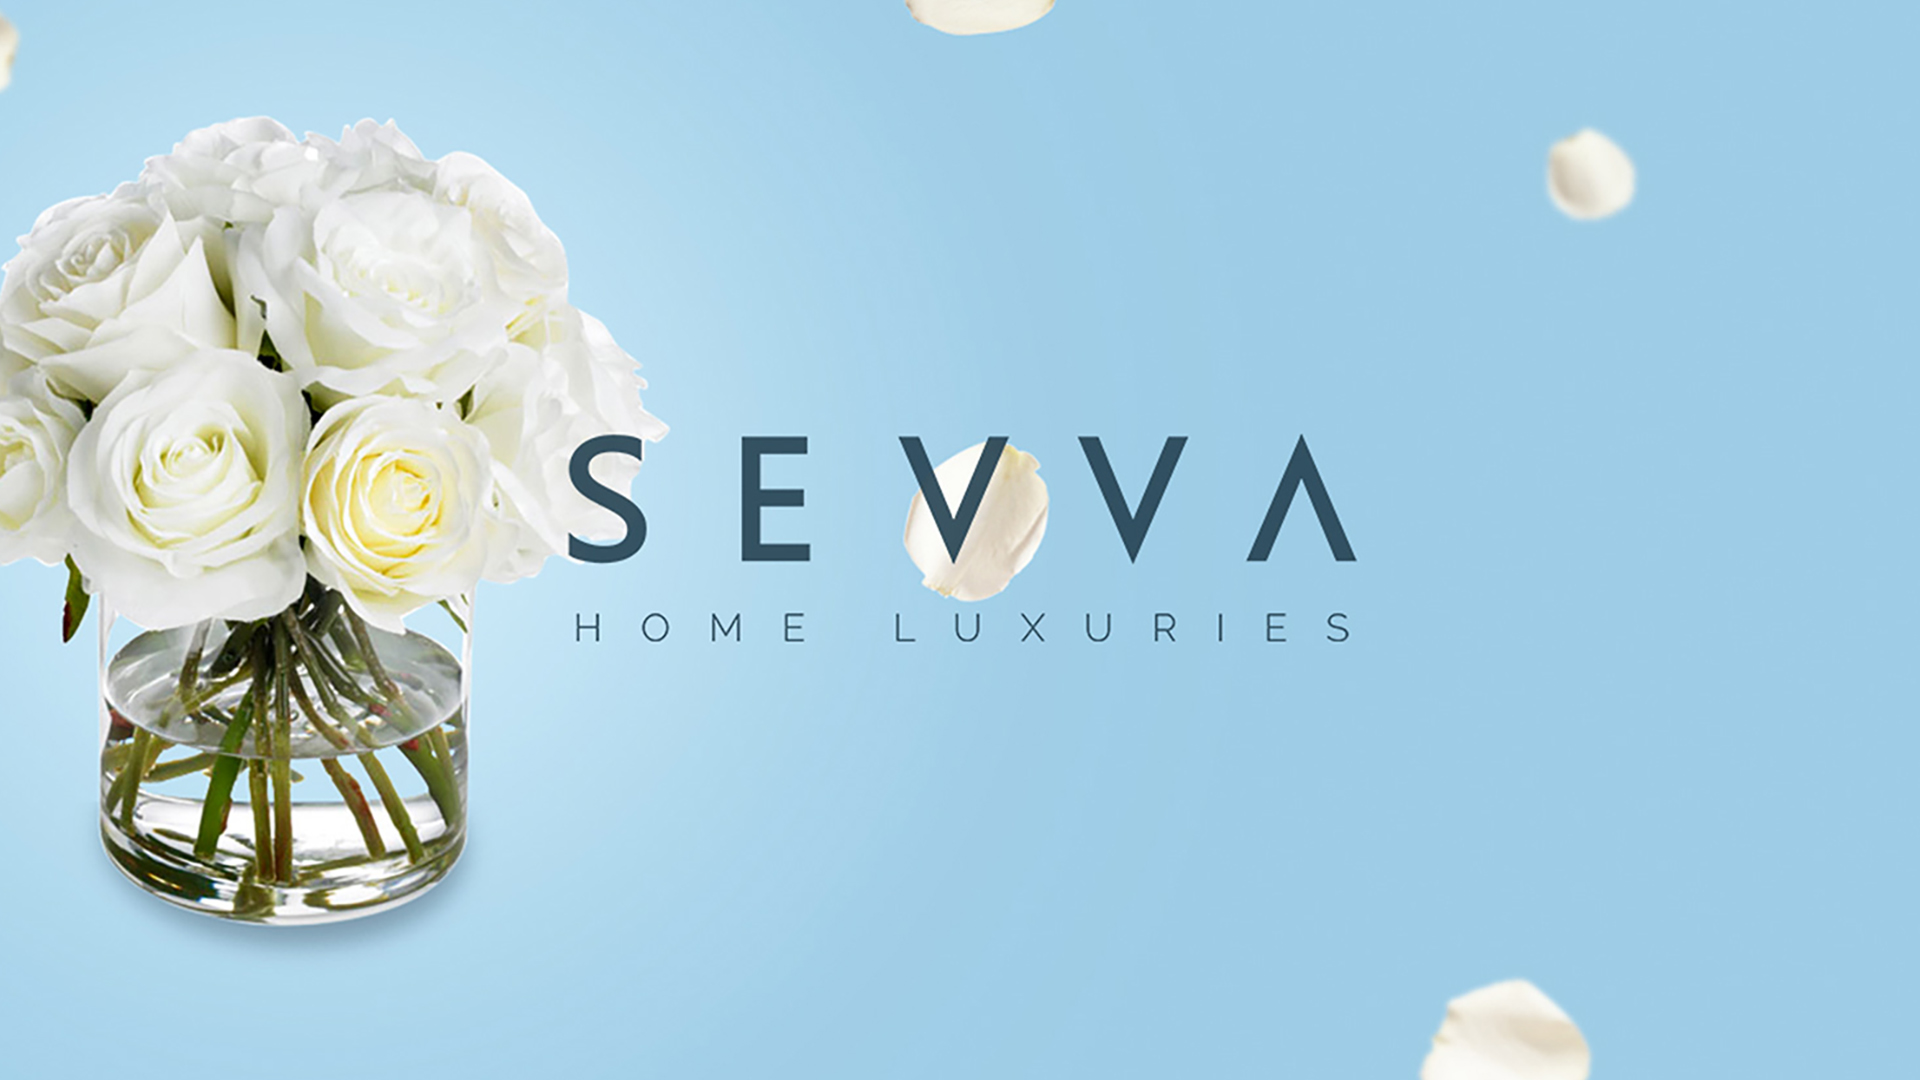 SEVVA Website Design Preview